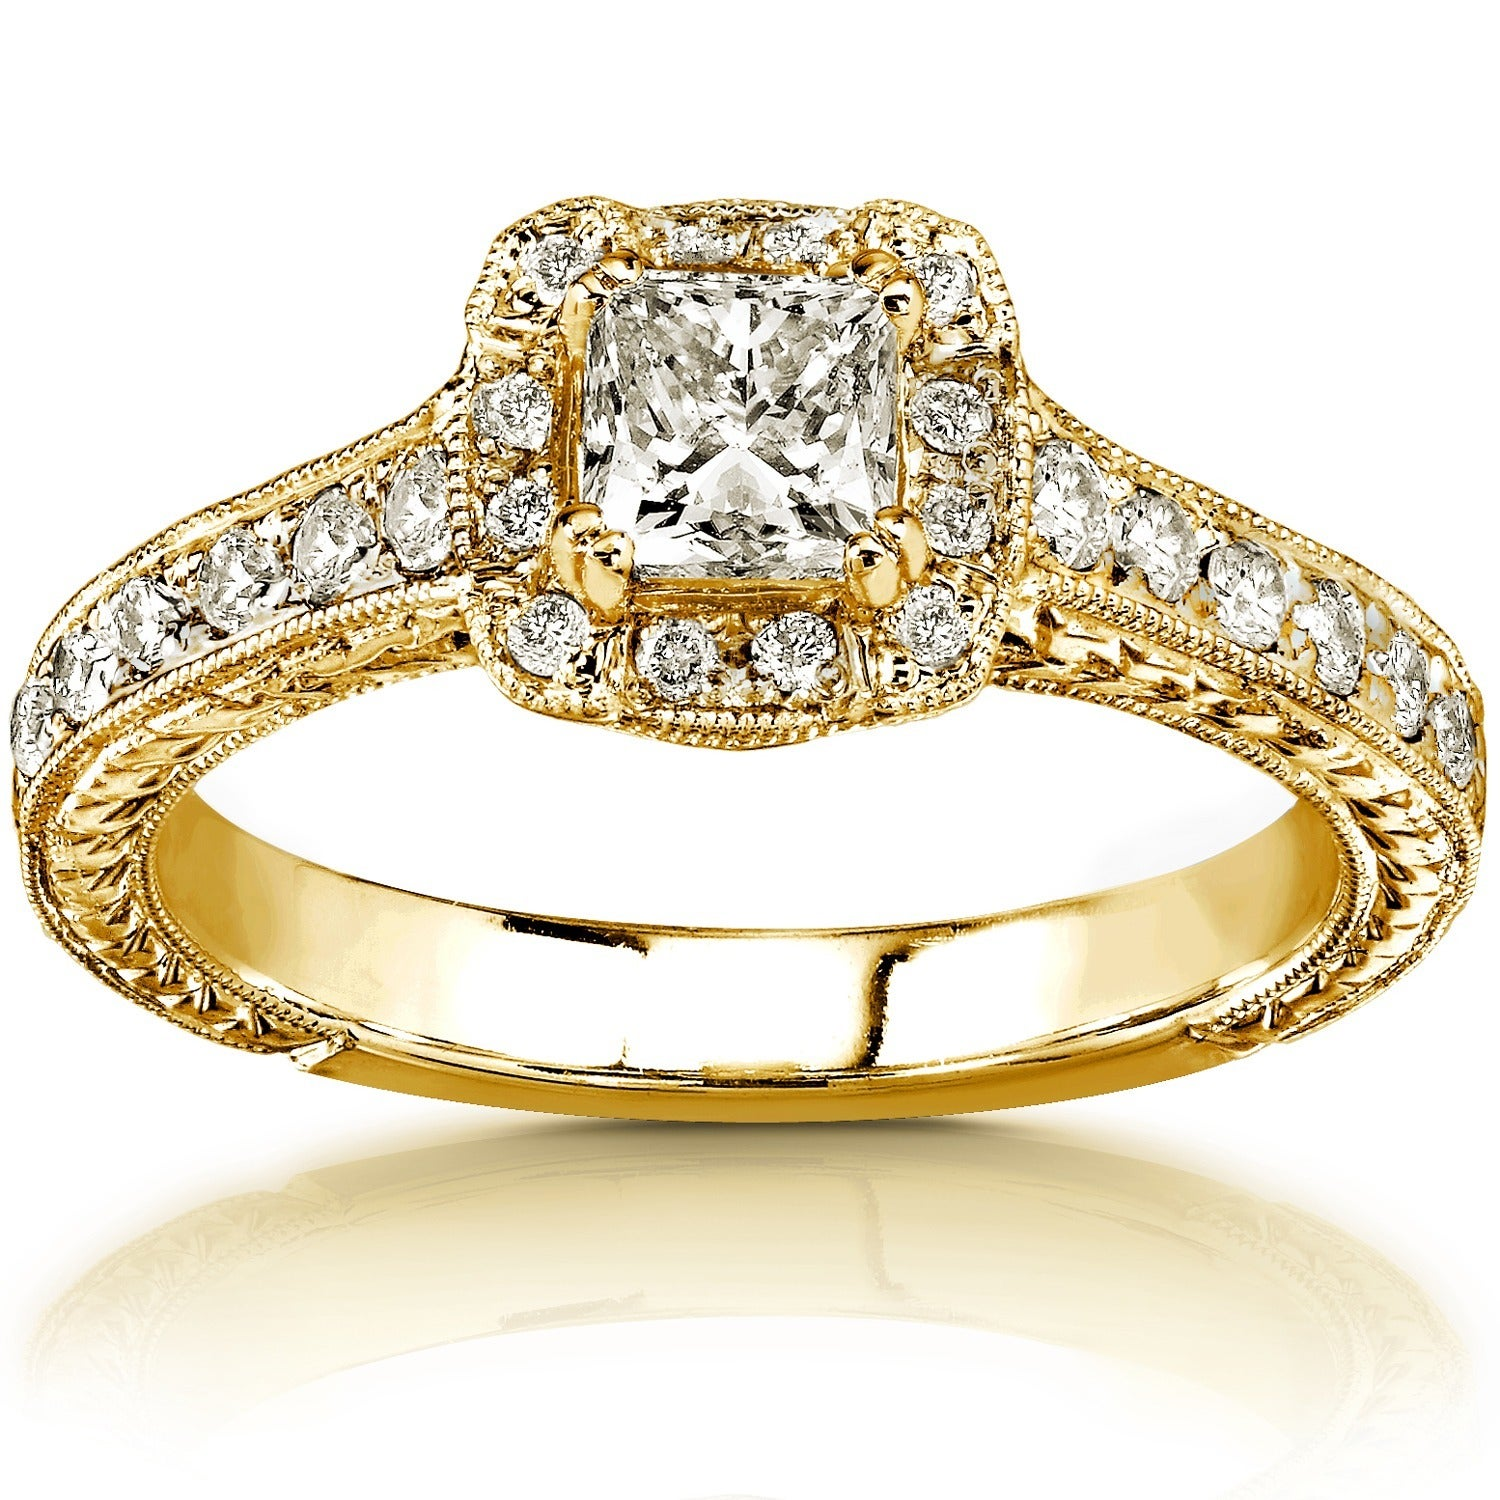 Annello By Kobelli 14k Gold 3 4ct Tdw Princess Cut Diamond Halo Engagement Ring